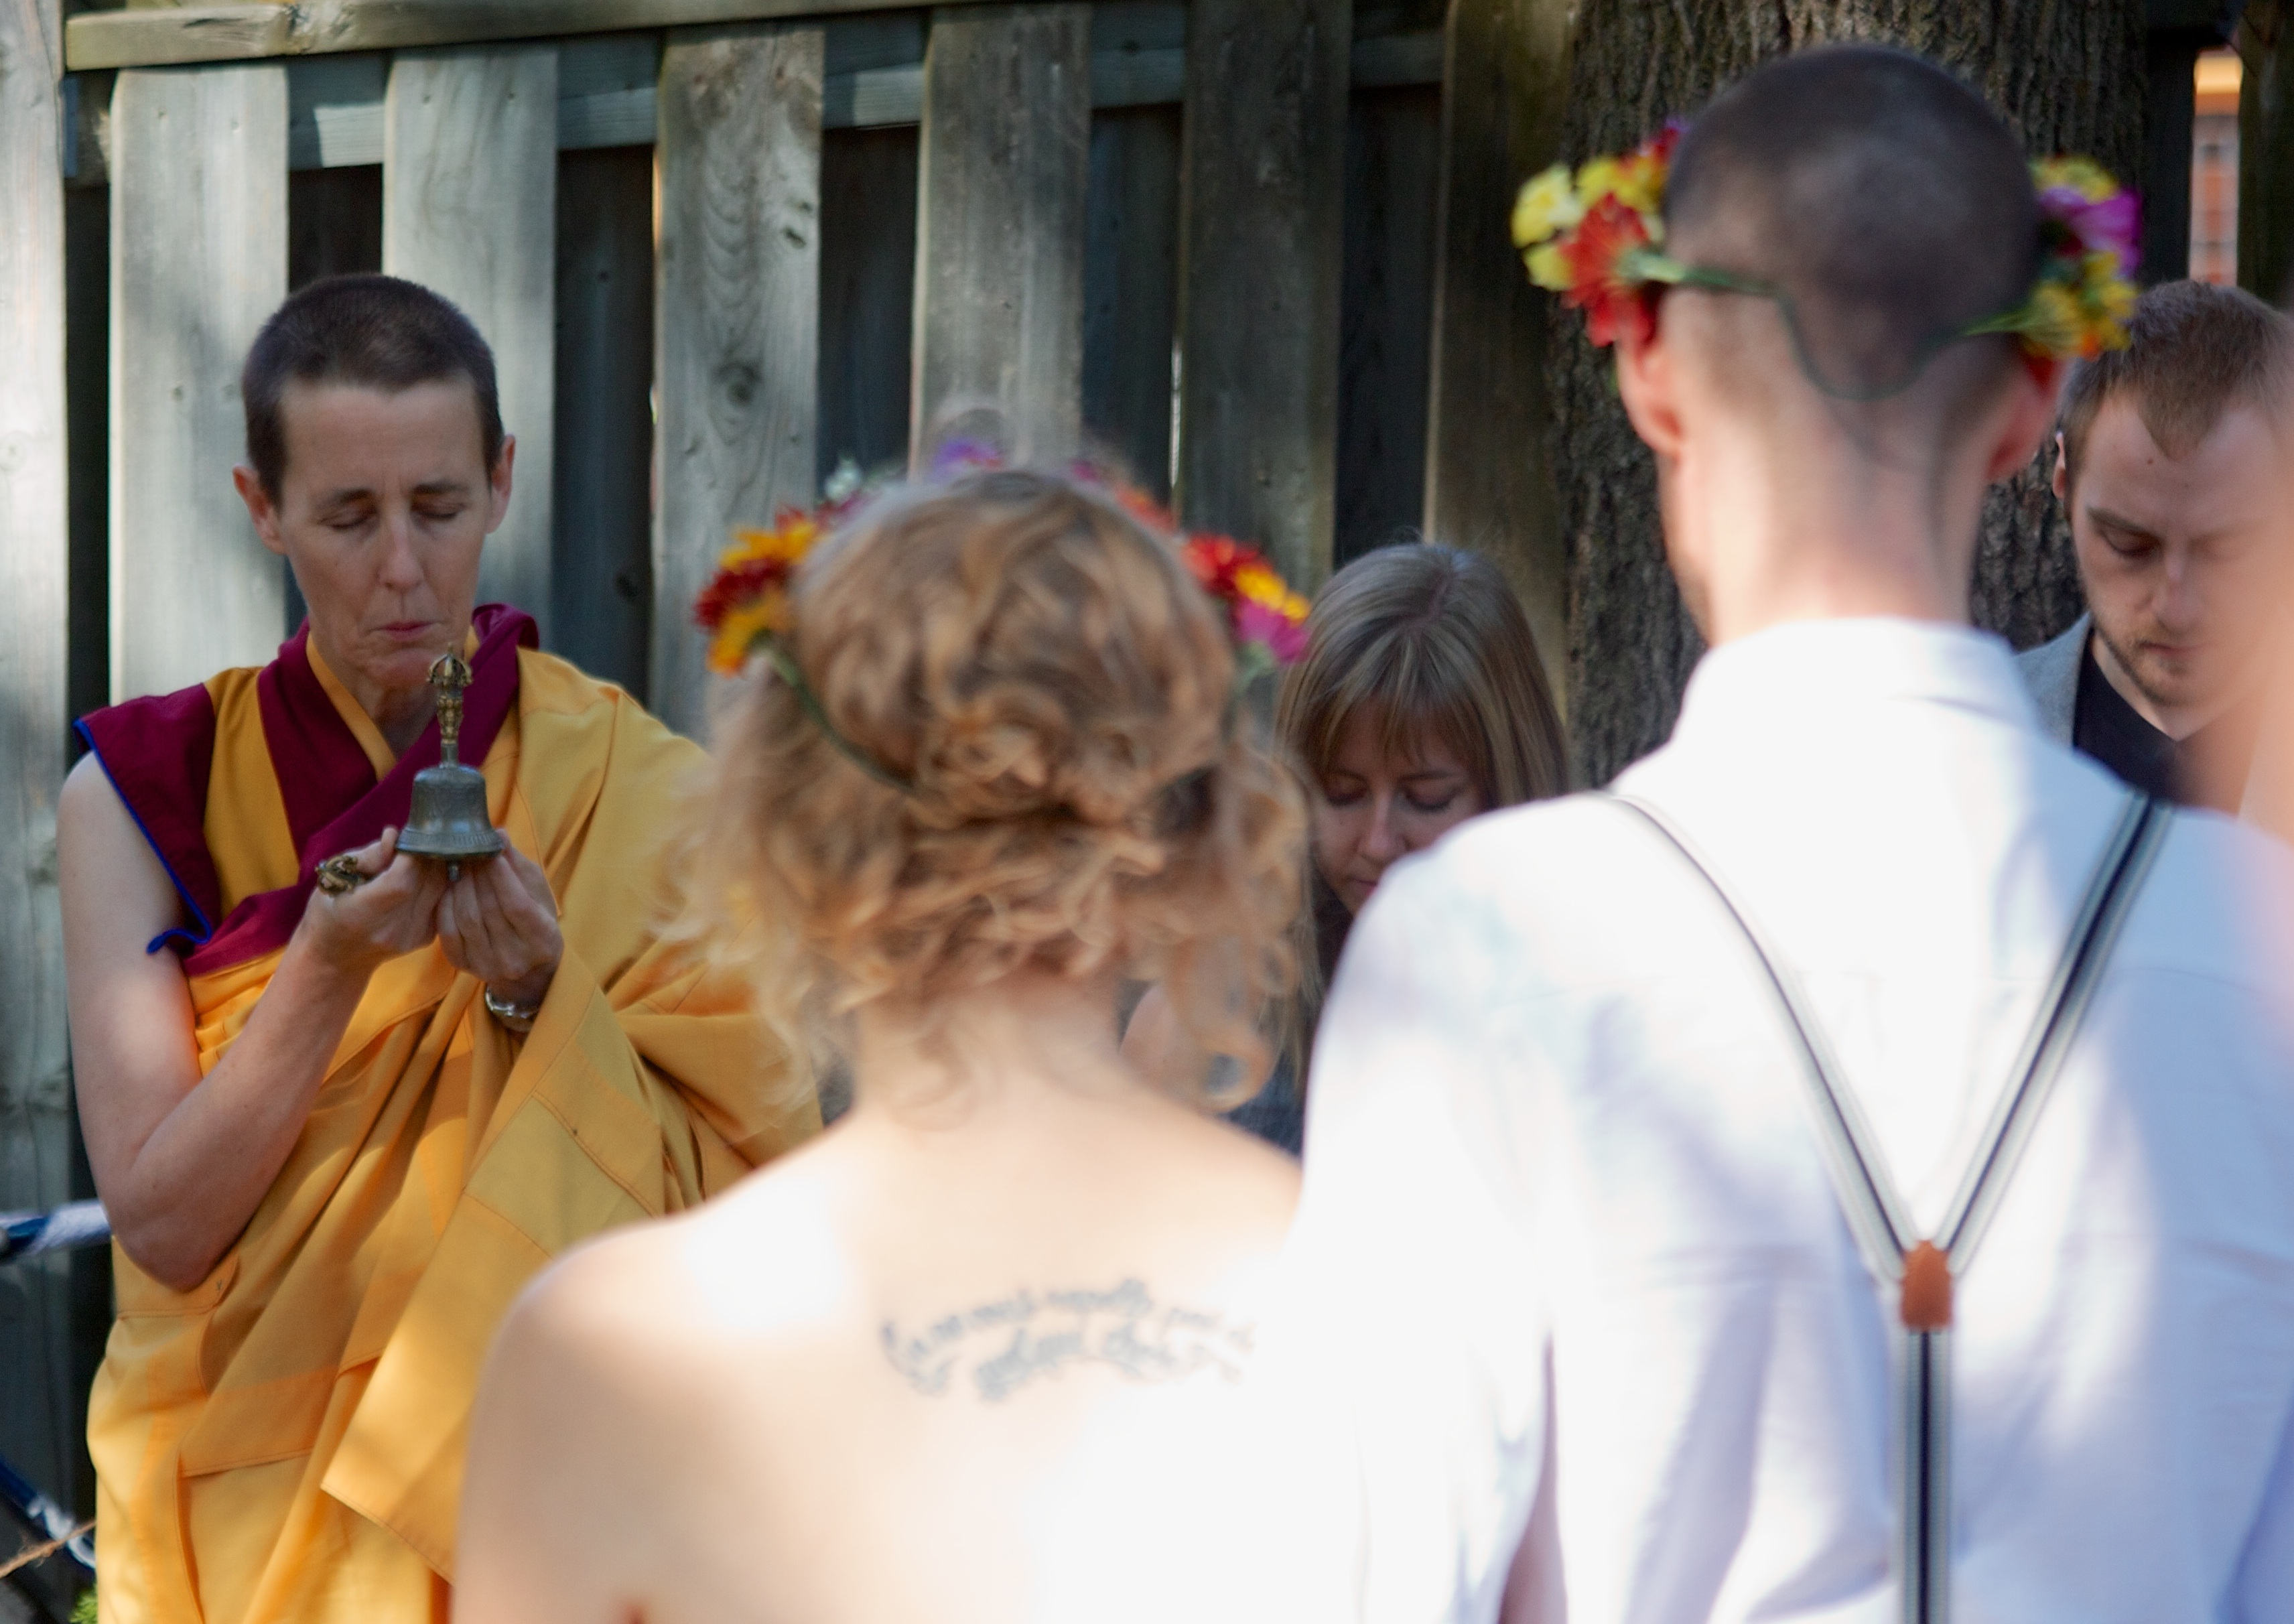 The author's backyard Buddhist wedding in Waterloo this November.